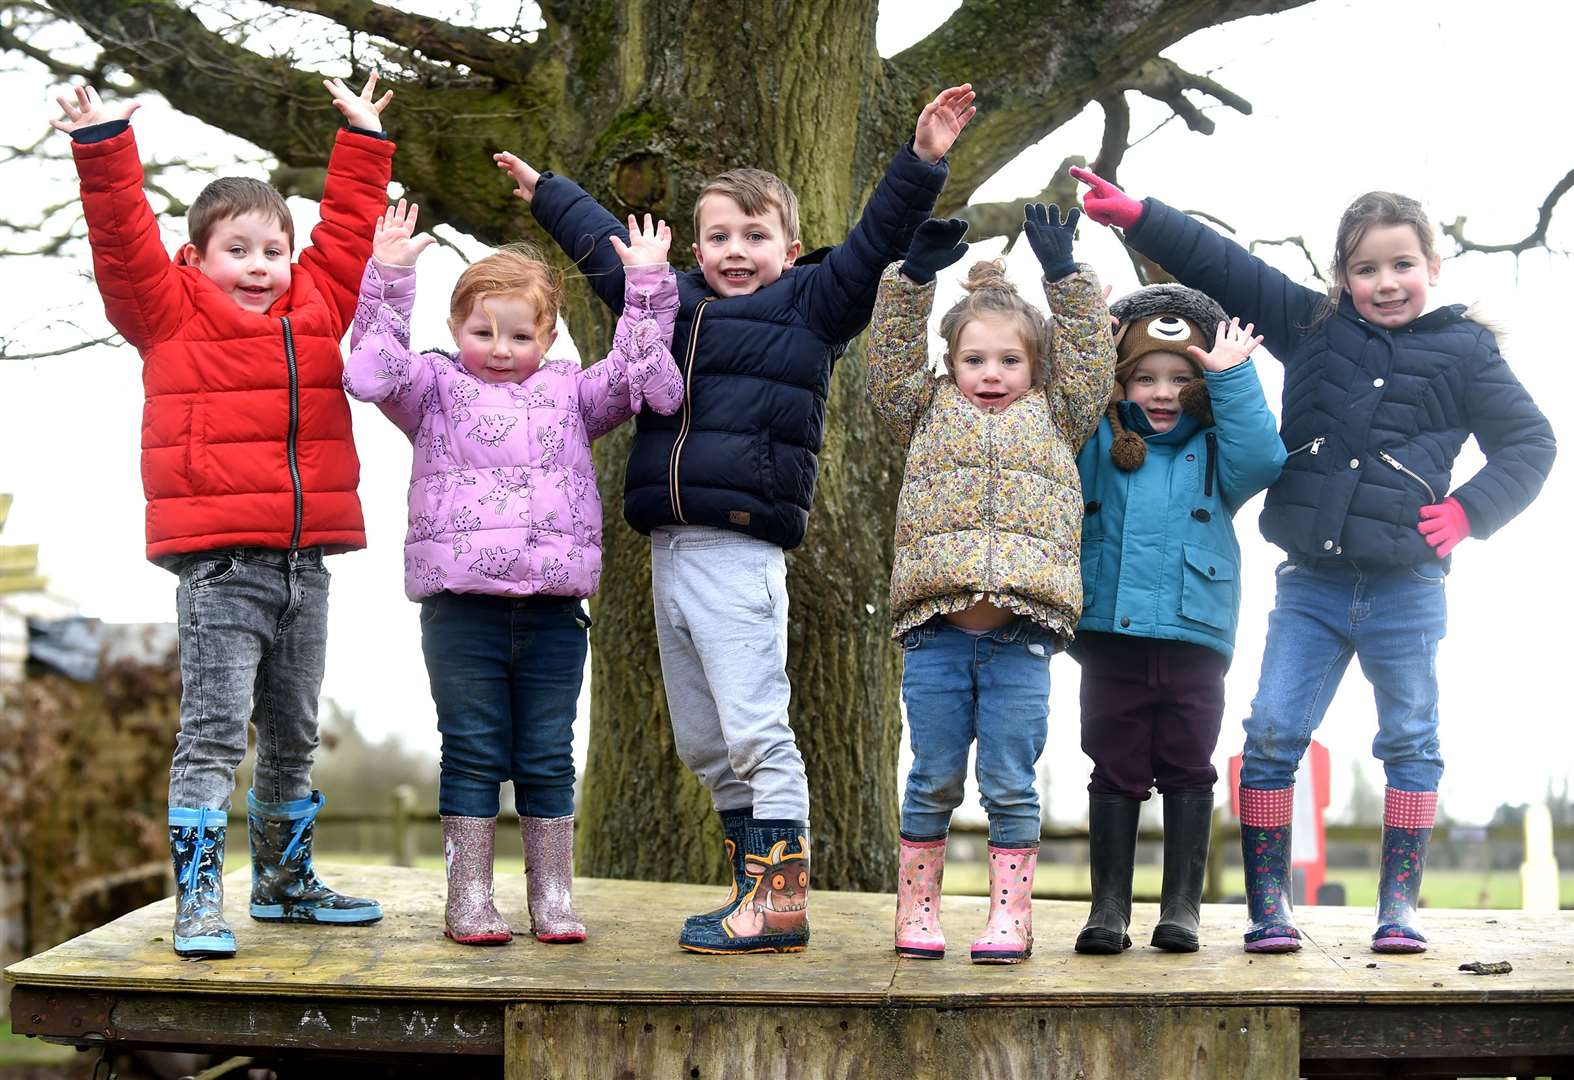 PICTURES: Youngsters explore outdoors with half-term nature hunt at Kentwell Hall